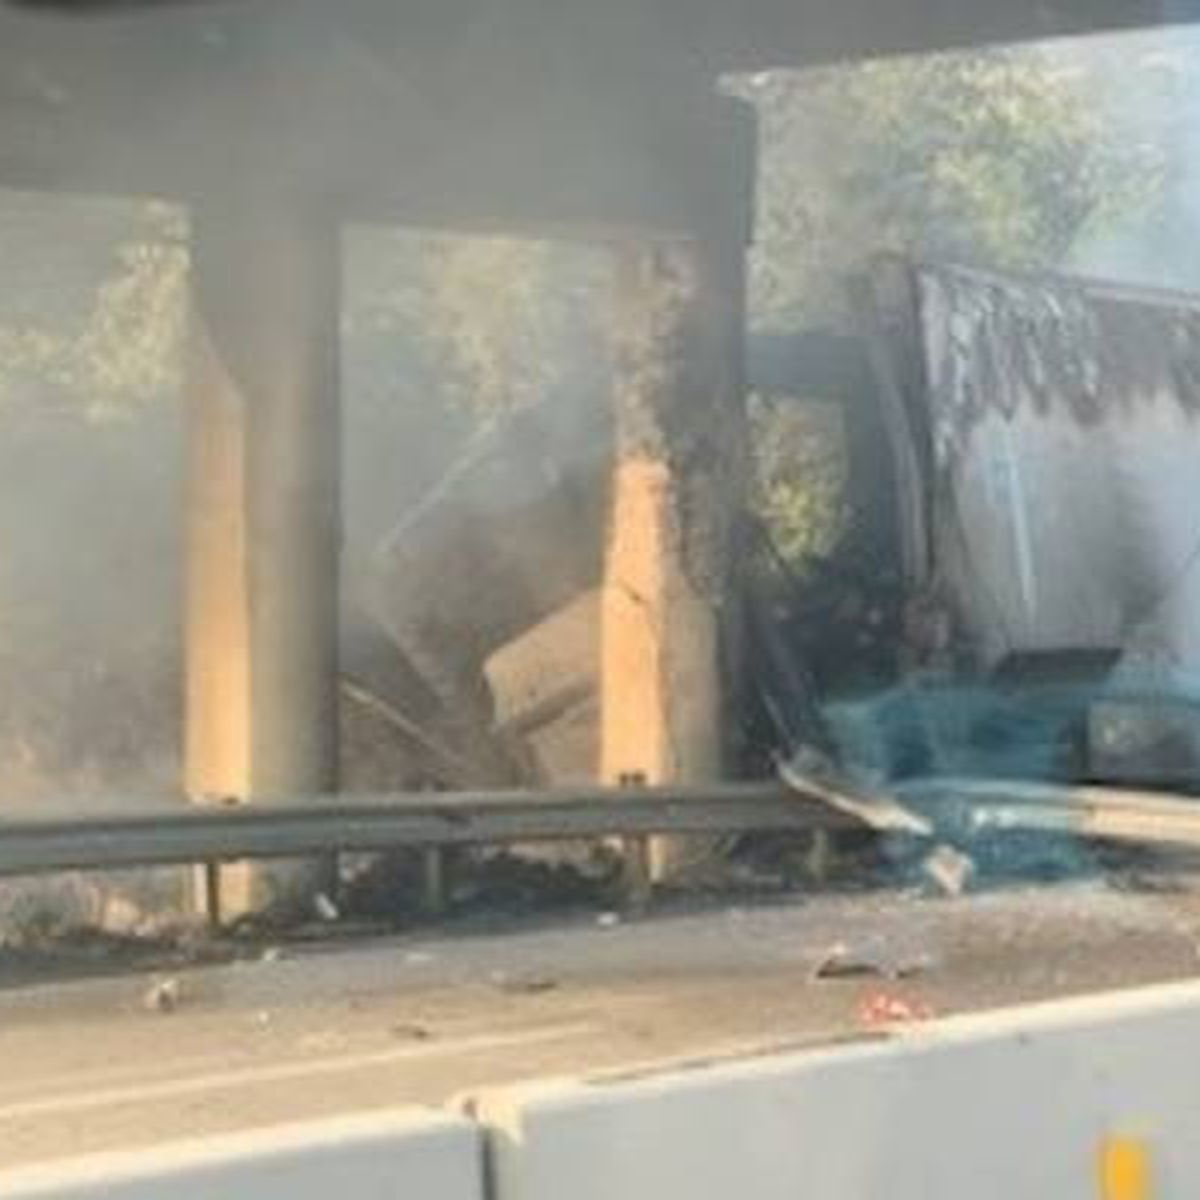 Semi driver killed in crash on I-20W in Lexington Co., detour in place